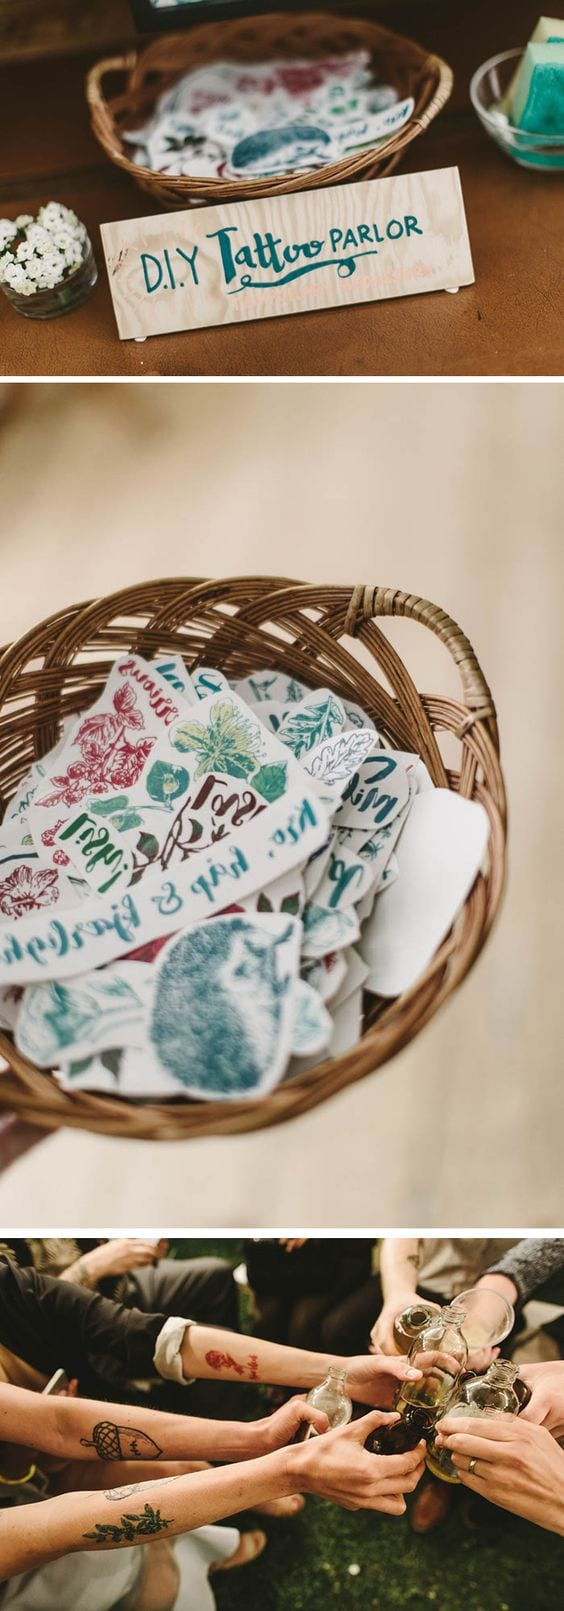 "wedding ideas for a wedding activity and favor— DIY tattoo parlor. Three images show a basket of temporary tattoos with a sign that reads ""DIY Tattoo Parlor,"" a close up of the tattoo basket, and then arms with the temporary tattoos toasting"